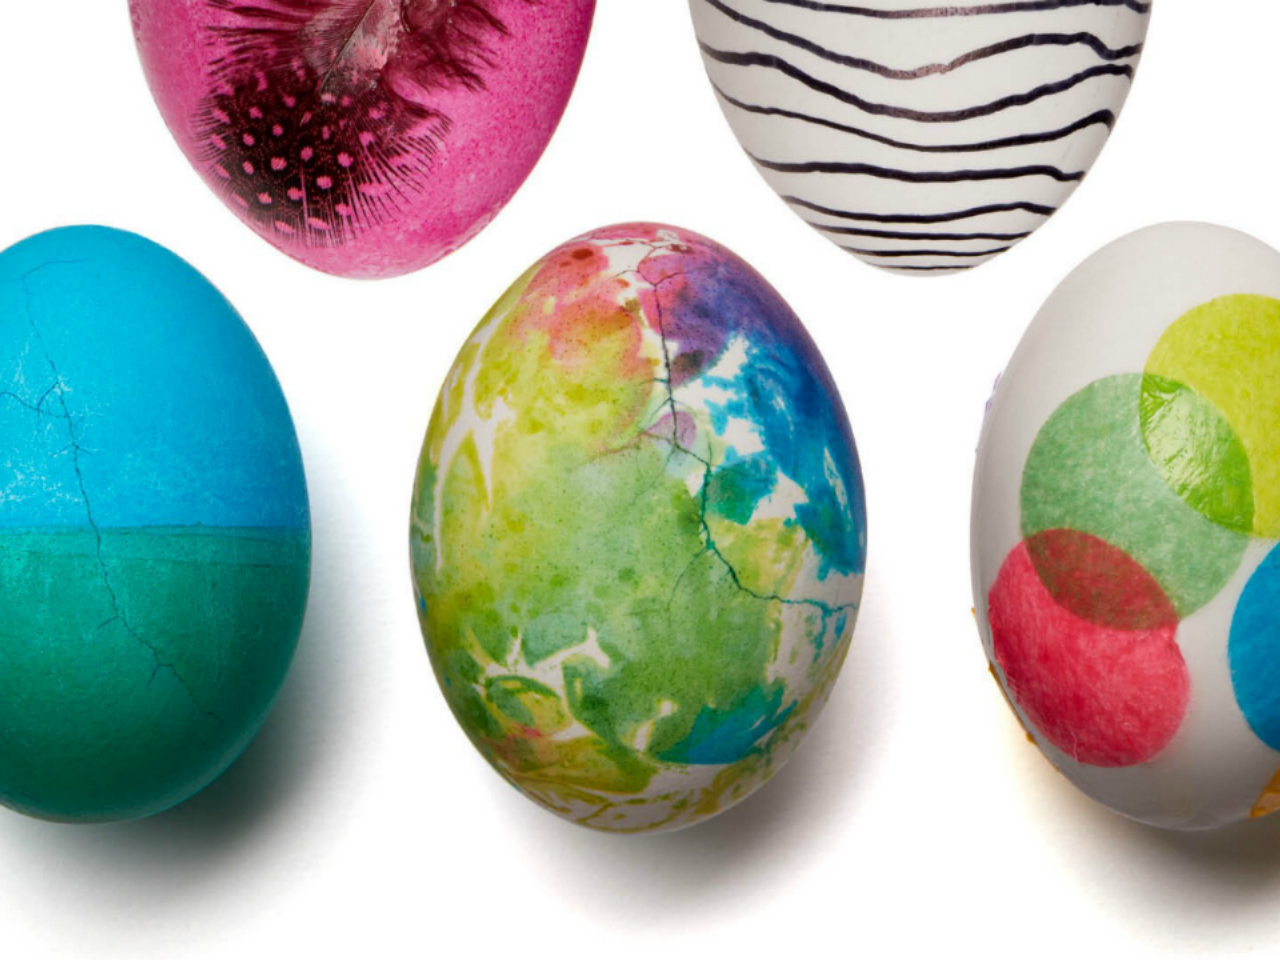 30 Fun Ways To Decorate Easter Eggs